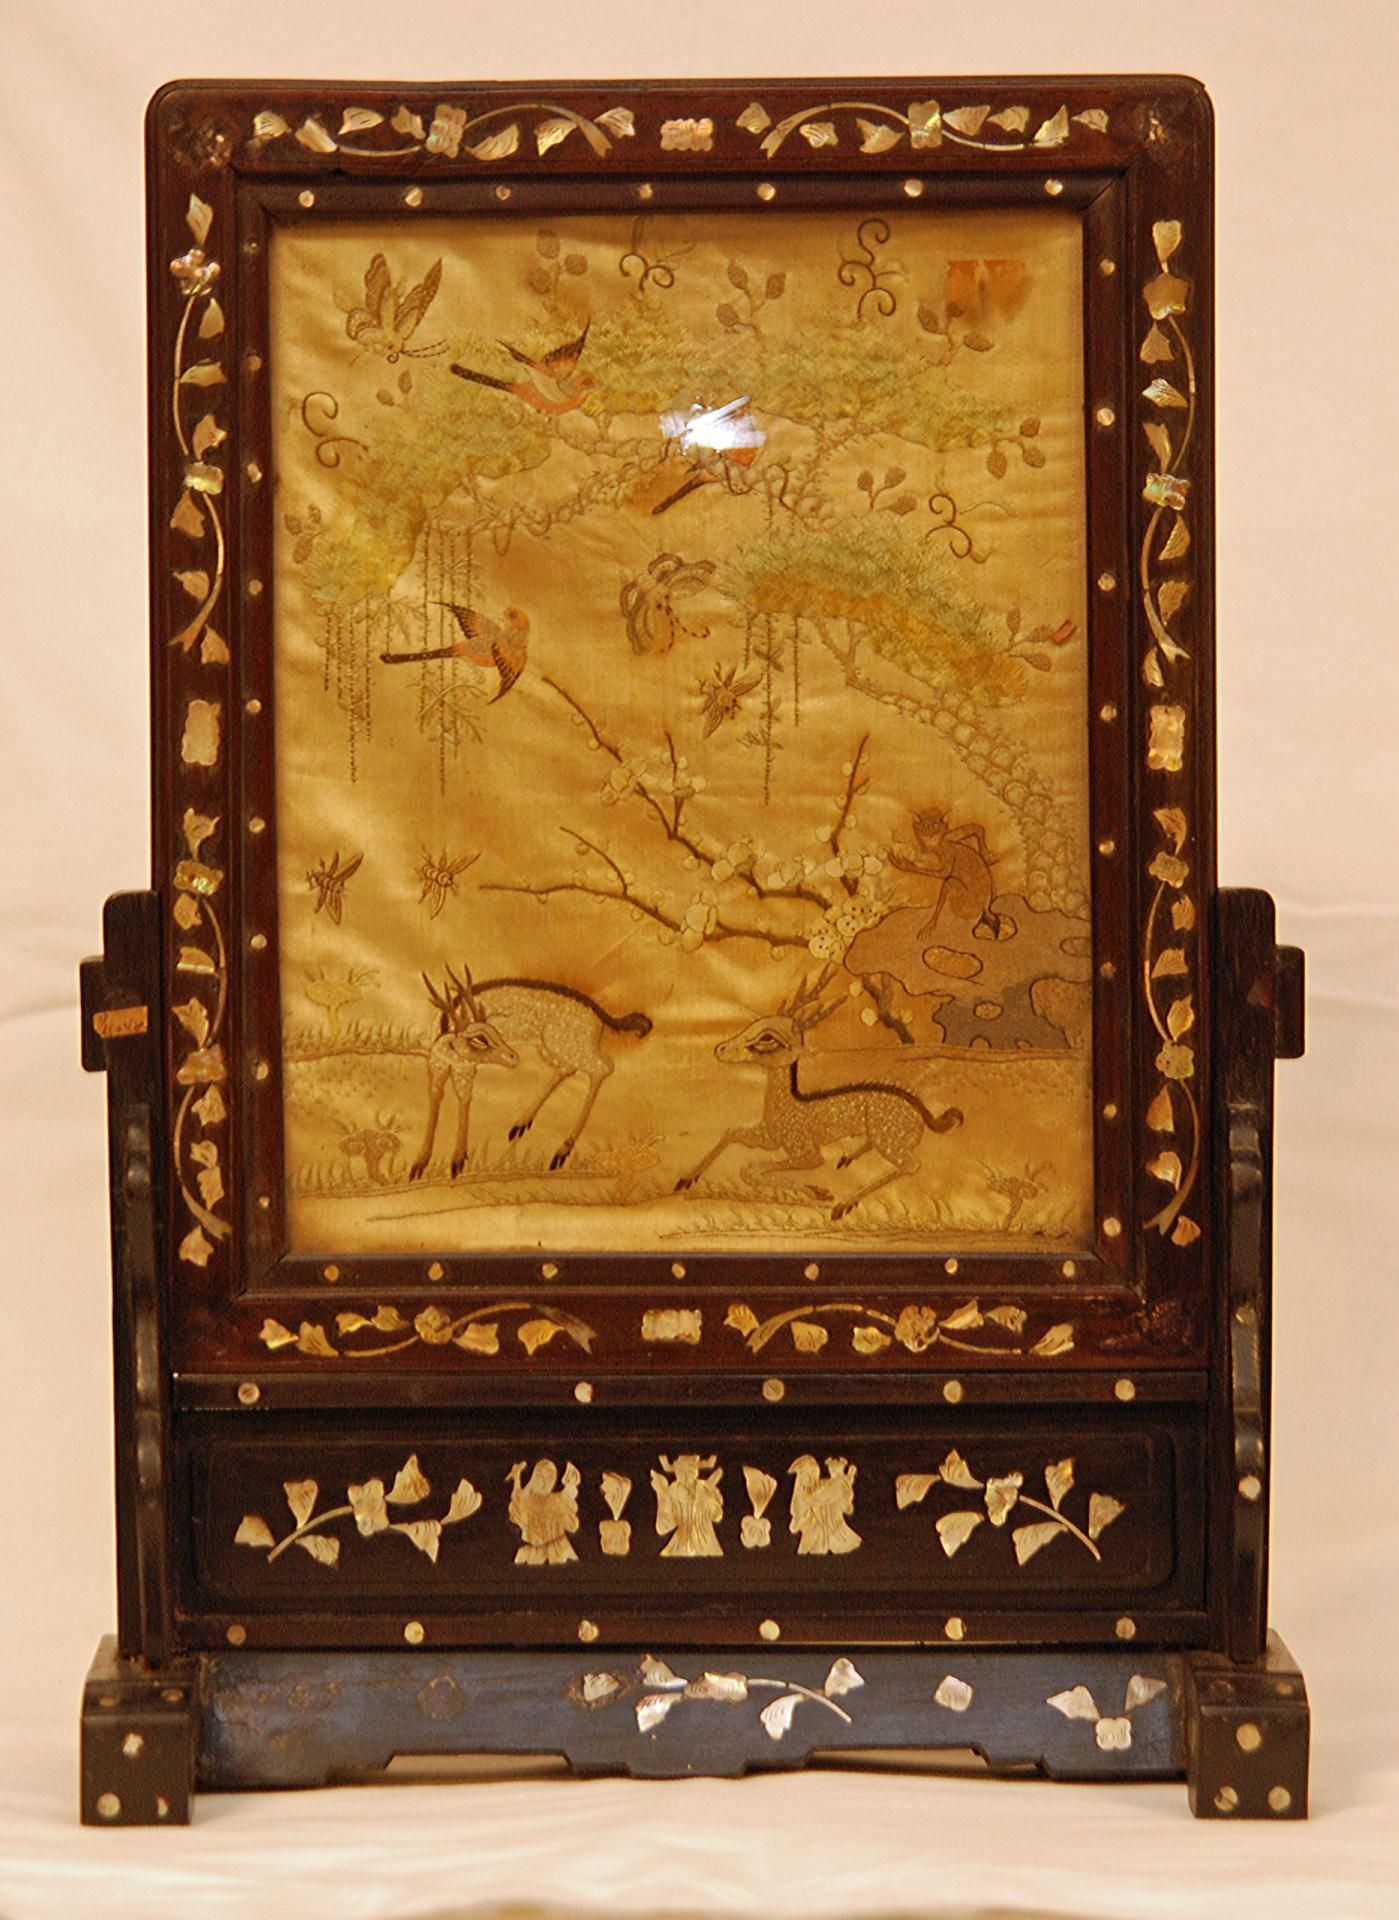 antique chinese hand embroidered silk screen depicting deer monkey butterflies insects flowers trees and paradise birds mounted in wooden table screen